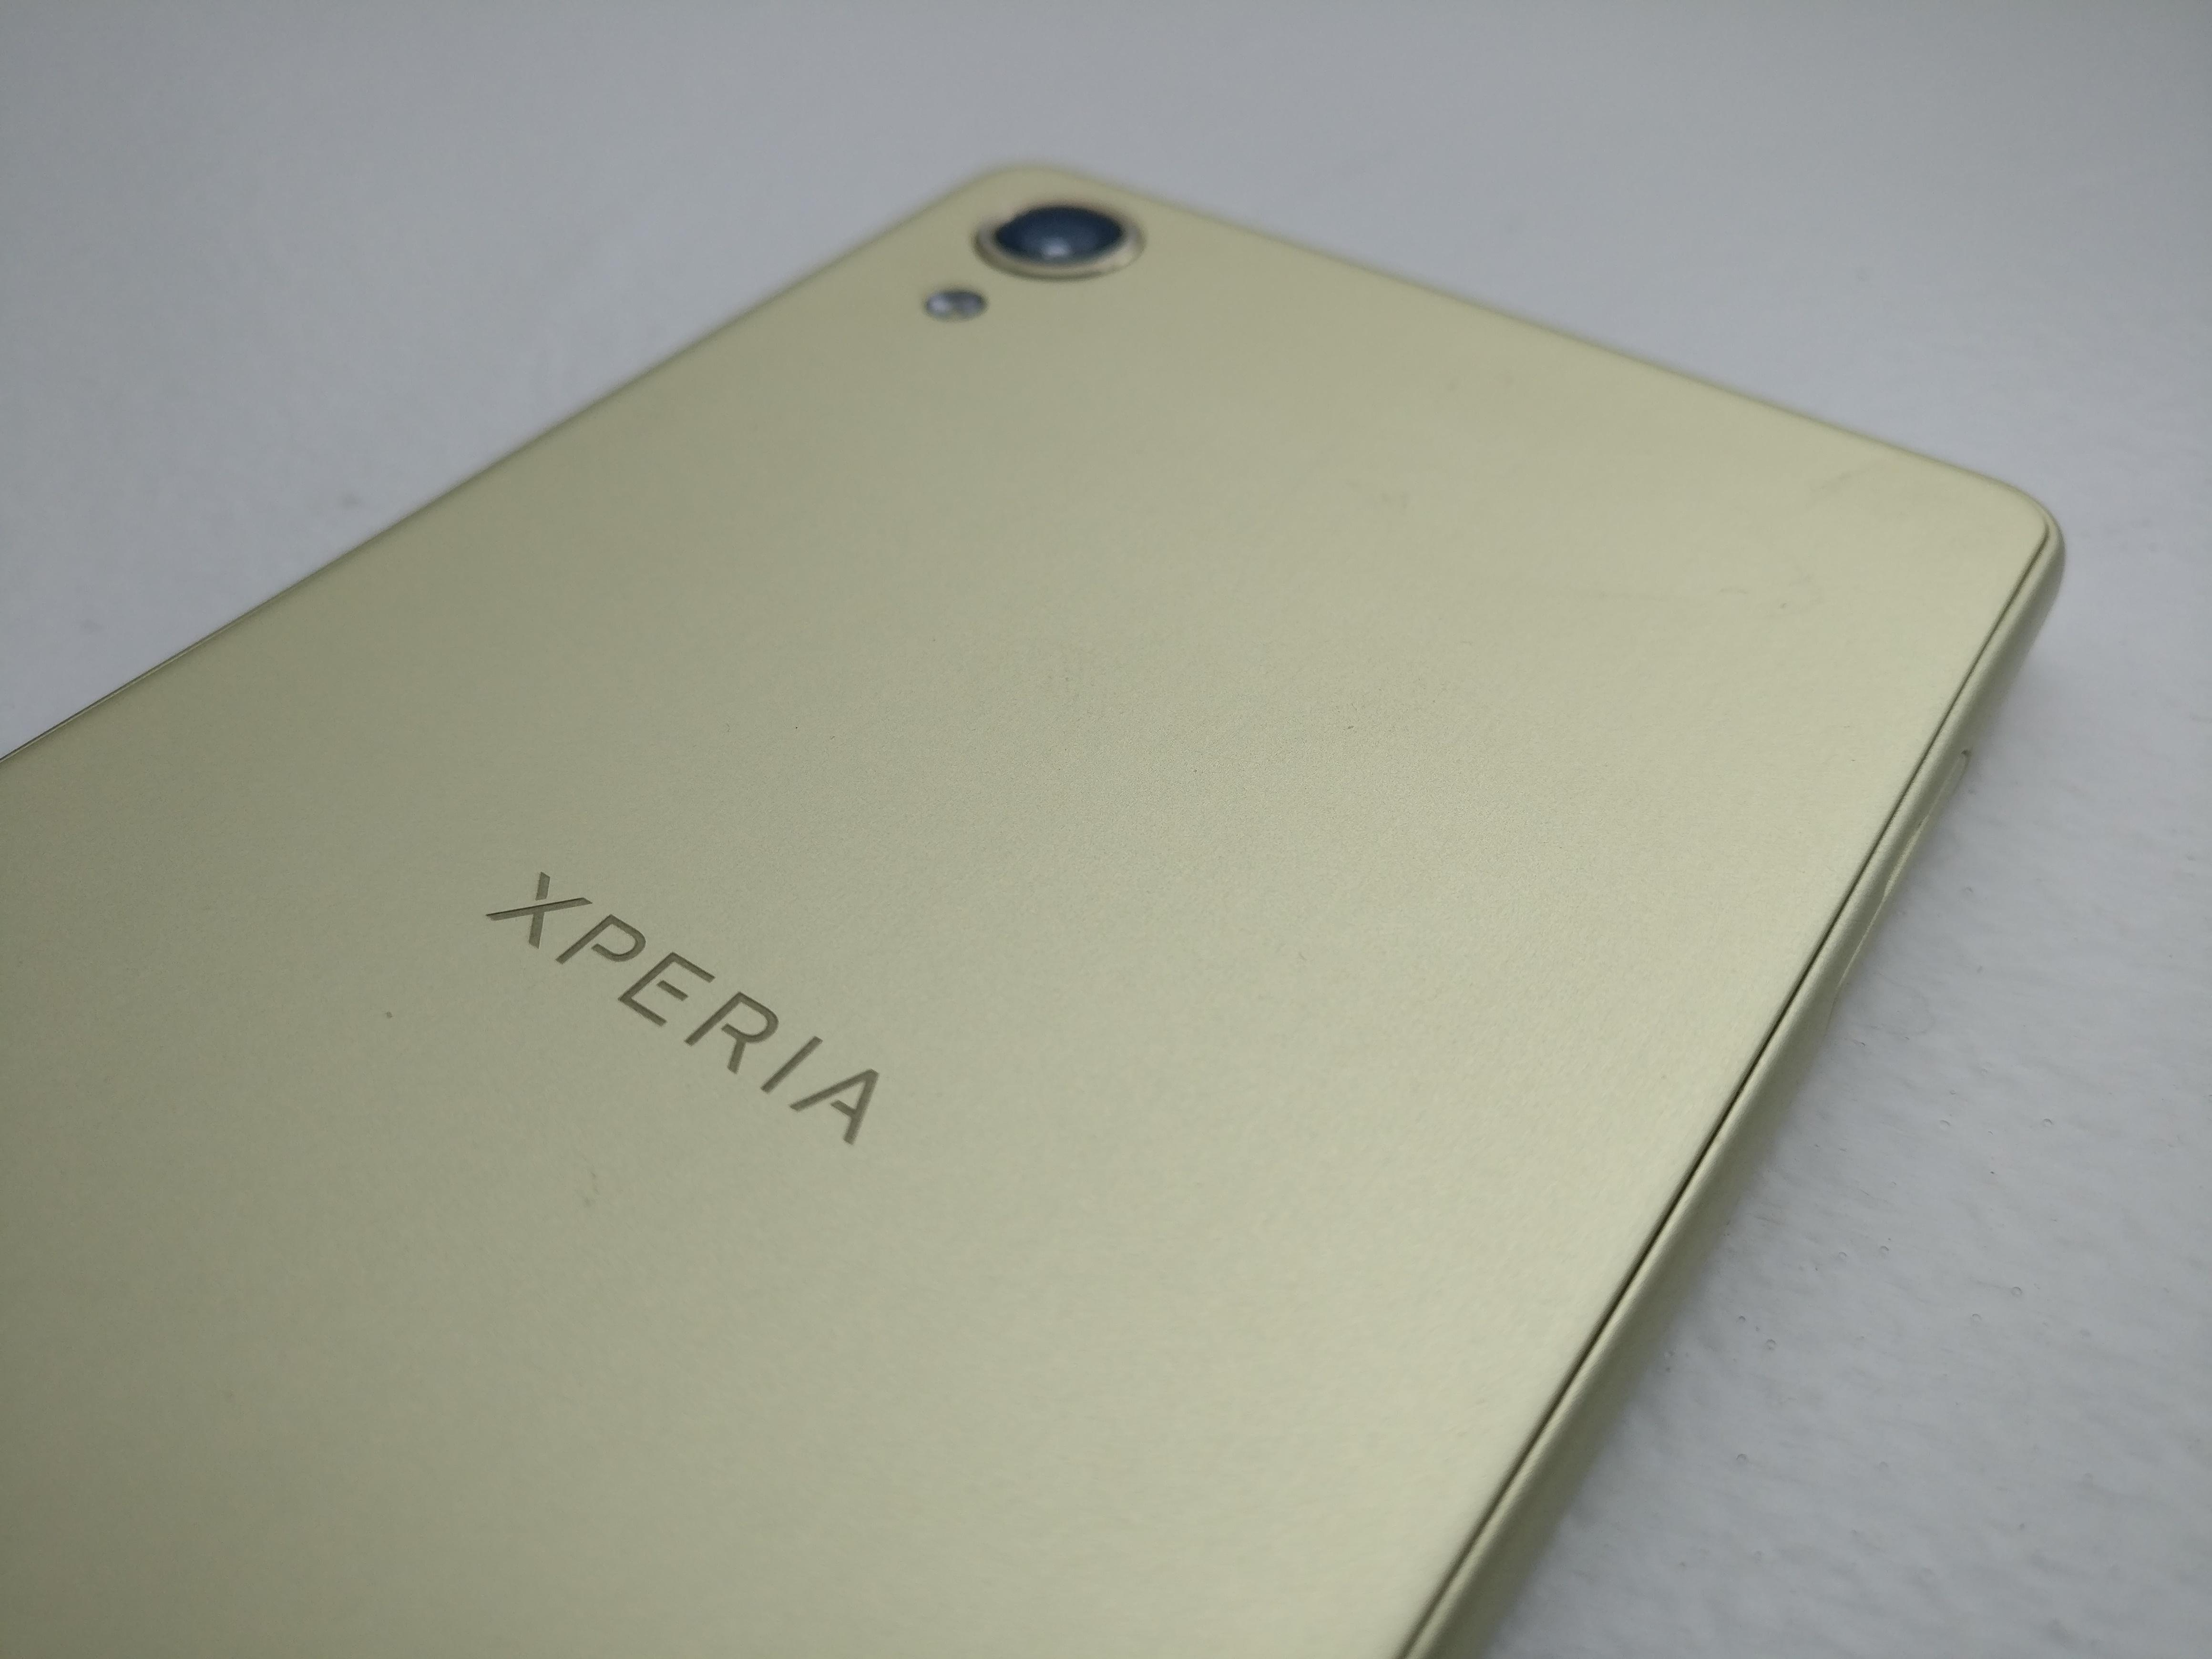 Sony Xperia X Review - Battery